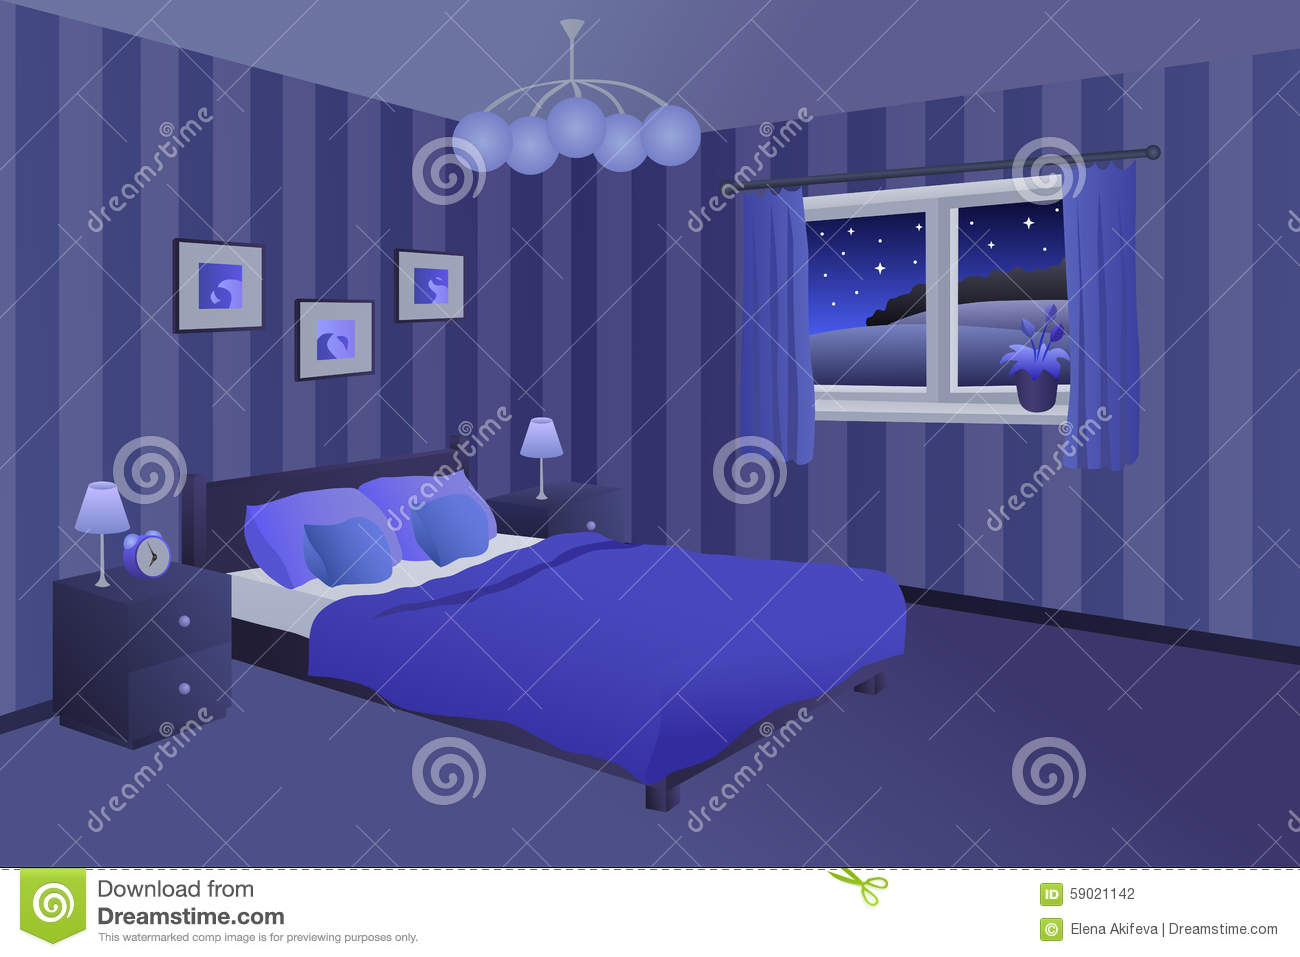 Modern blue and black bedroom - Modern Bedroom Night Blue Black Bed Pillows Lamps Window Illustration